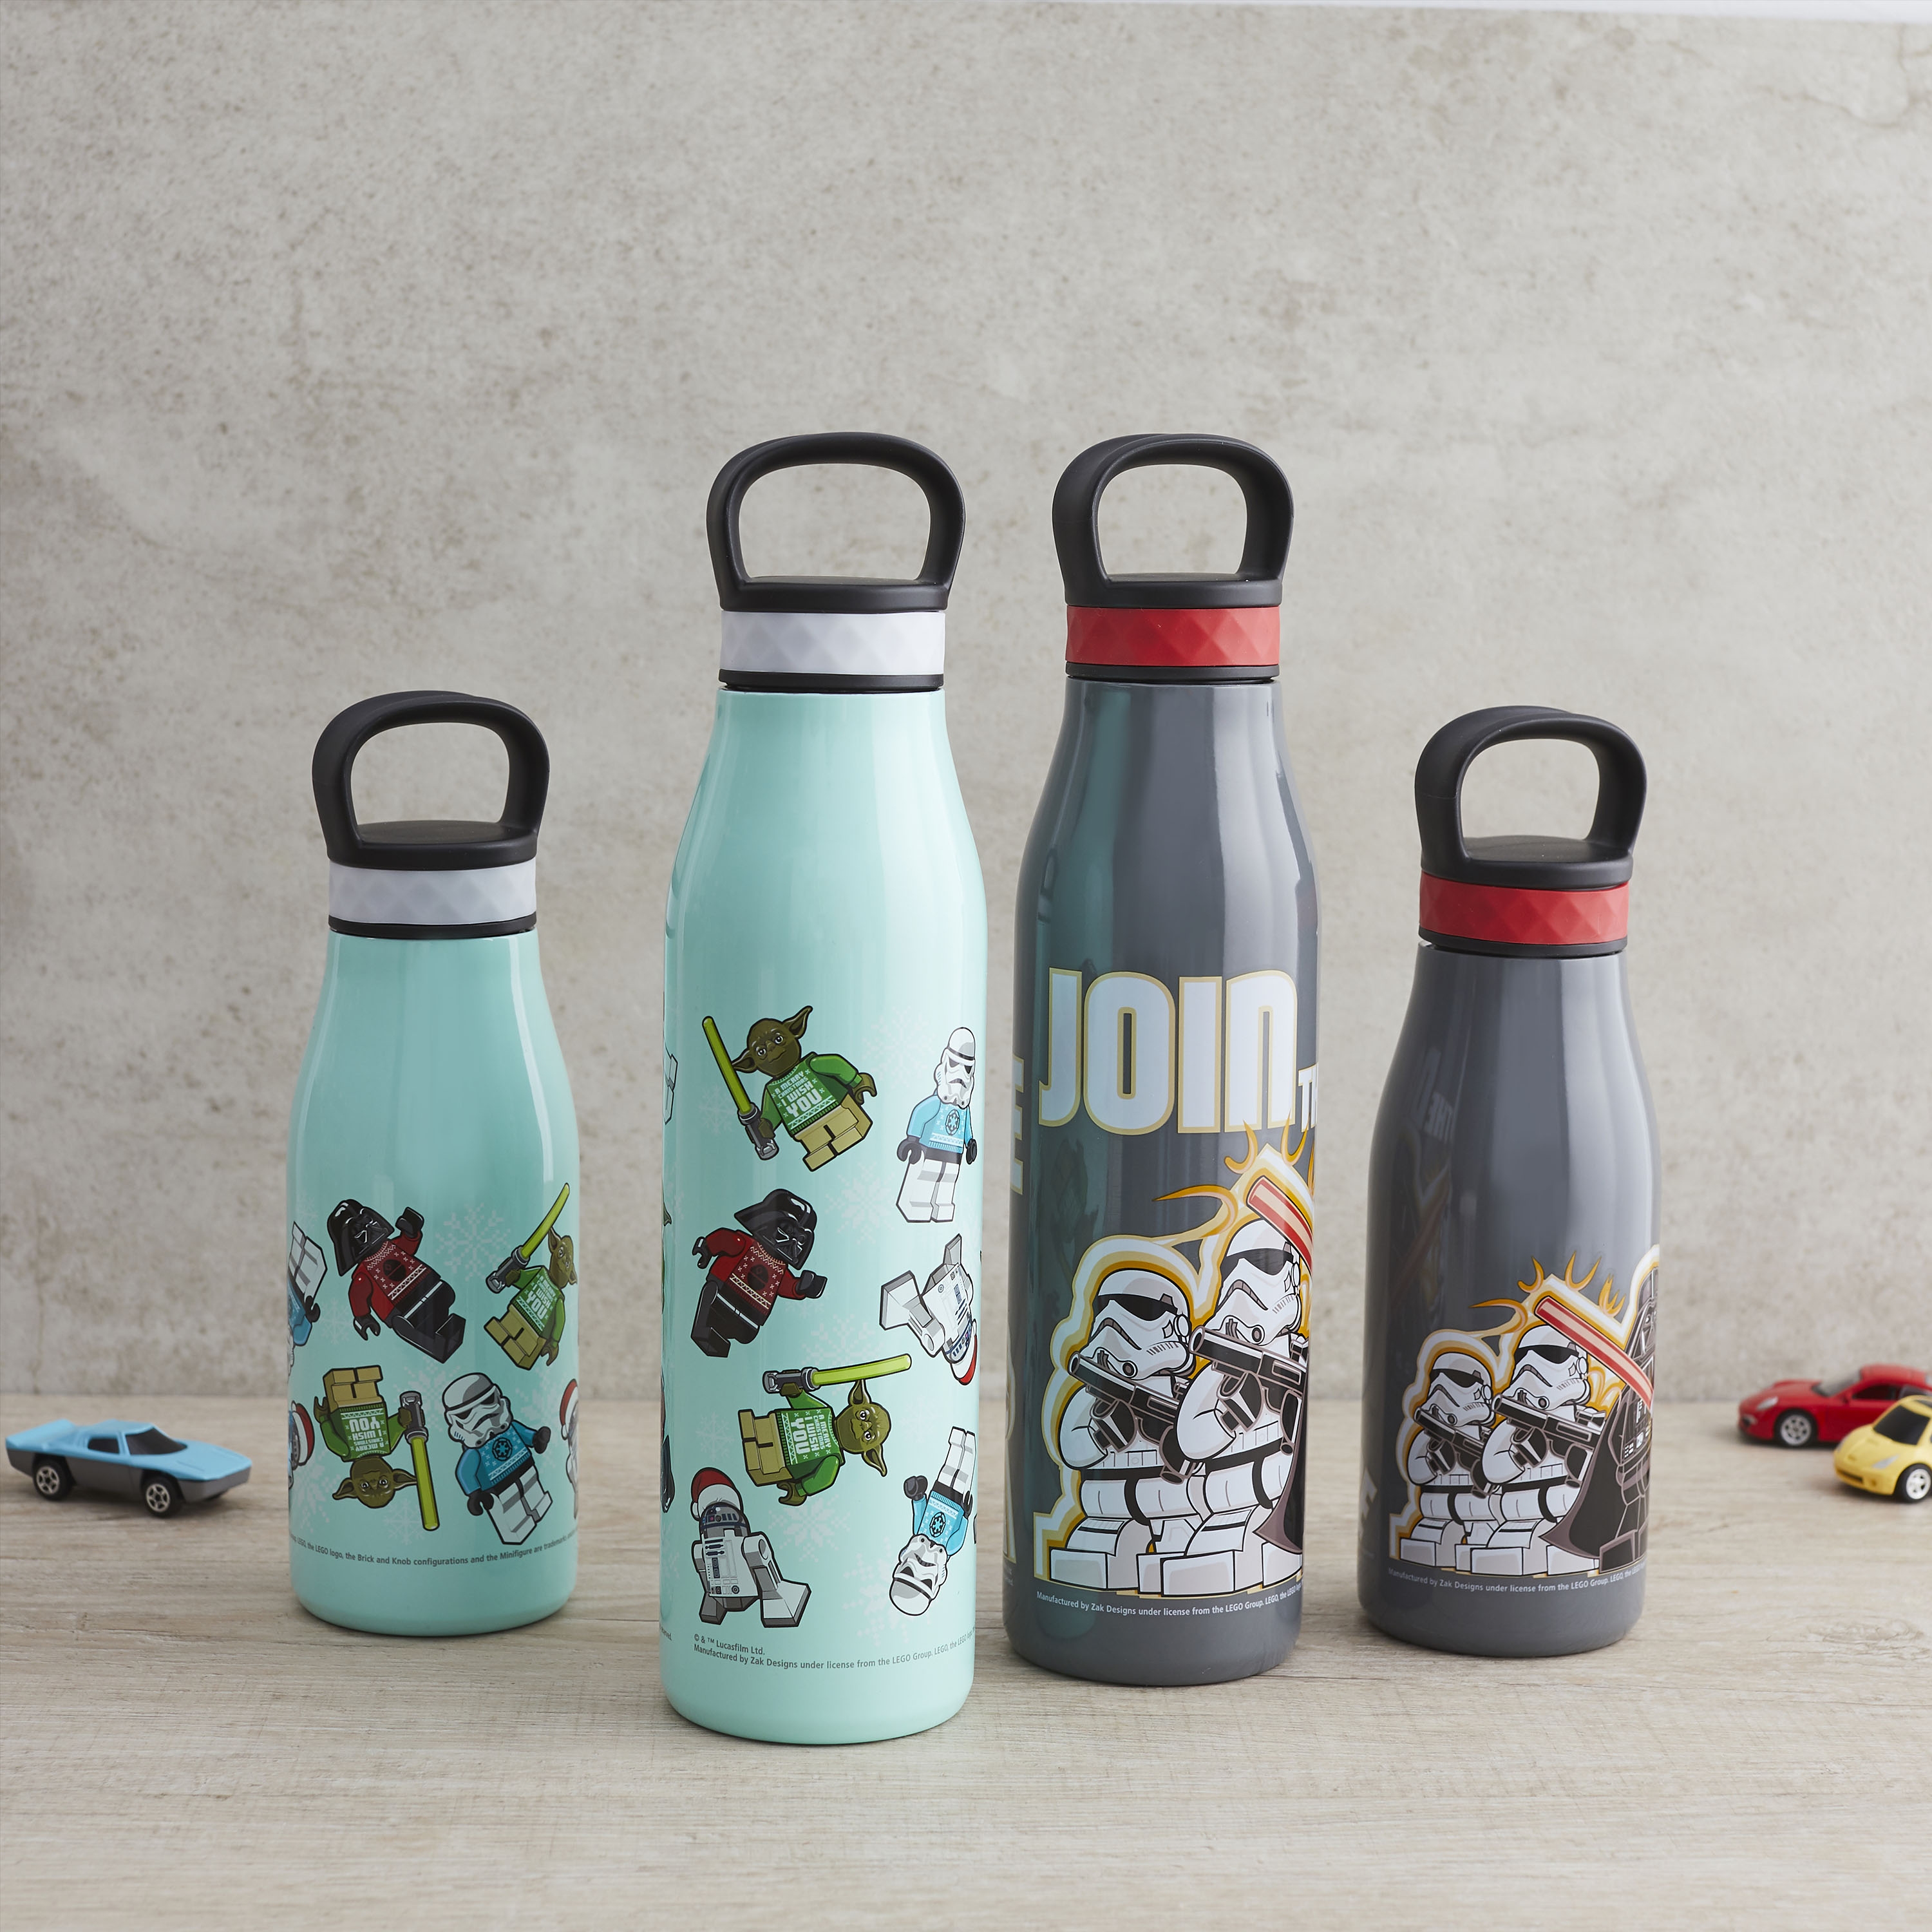 Lego Star Wars 20 ounce Stainless Steel Vacuum Insulated Water Bottle, Darth Vader and Stormtroopers slideshow image 2